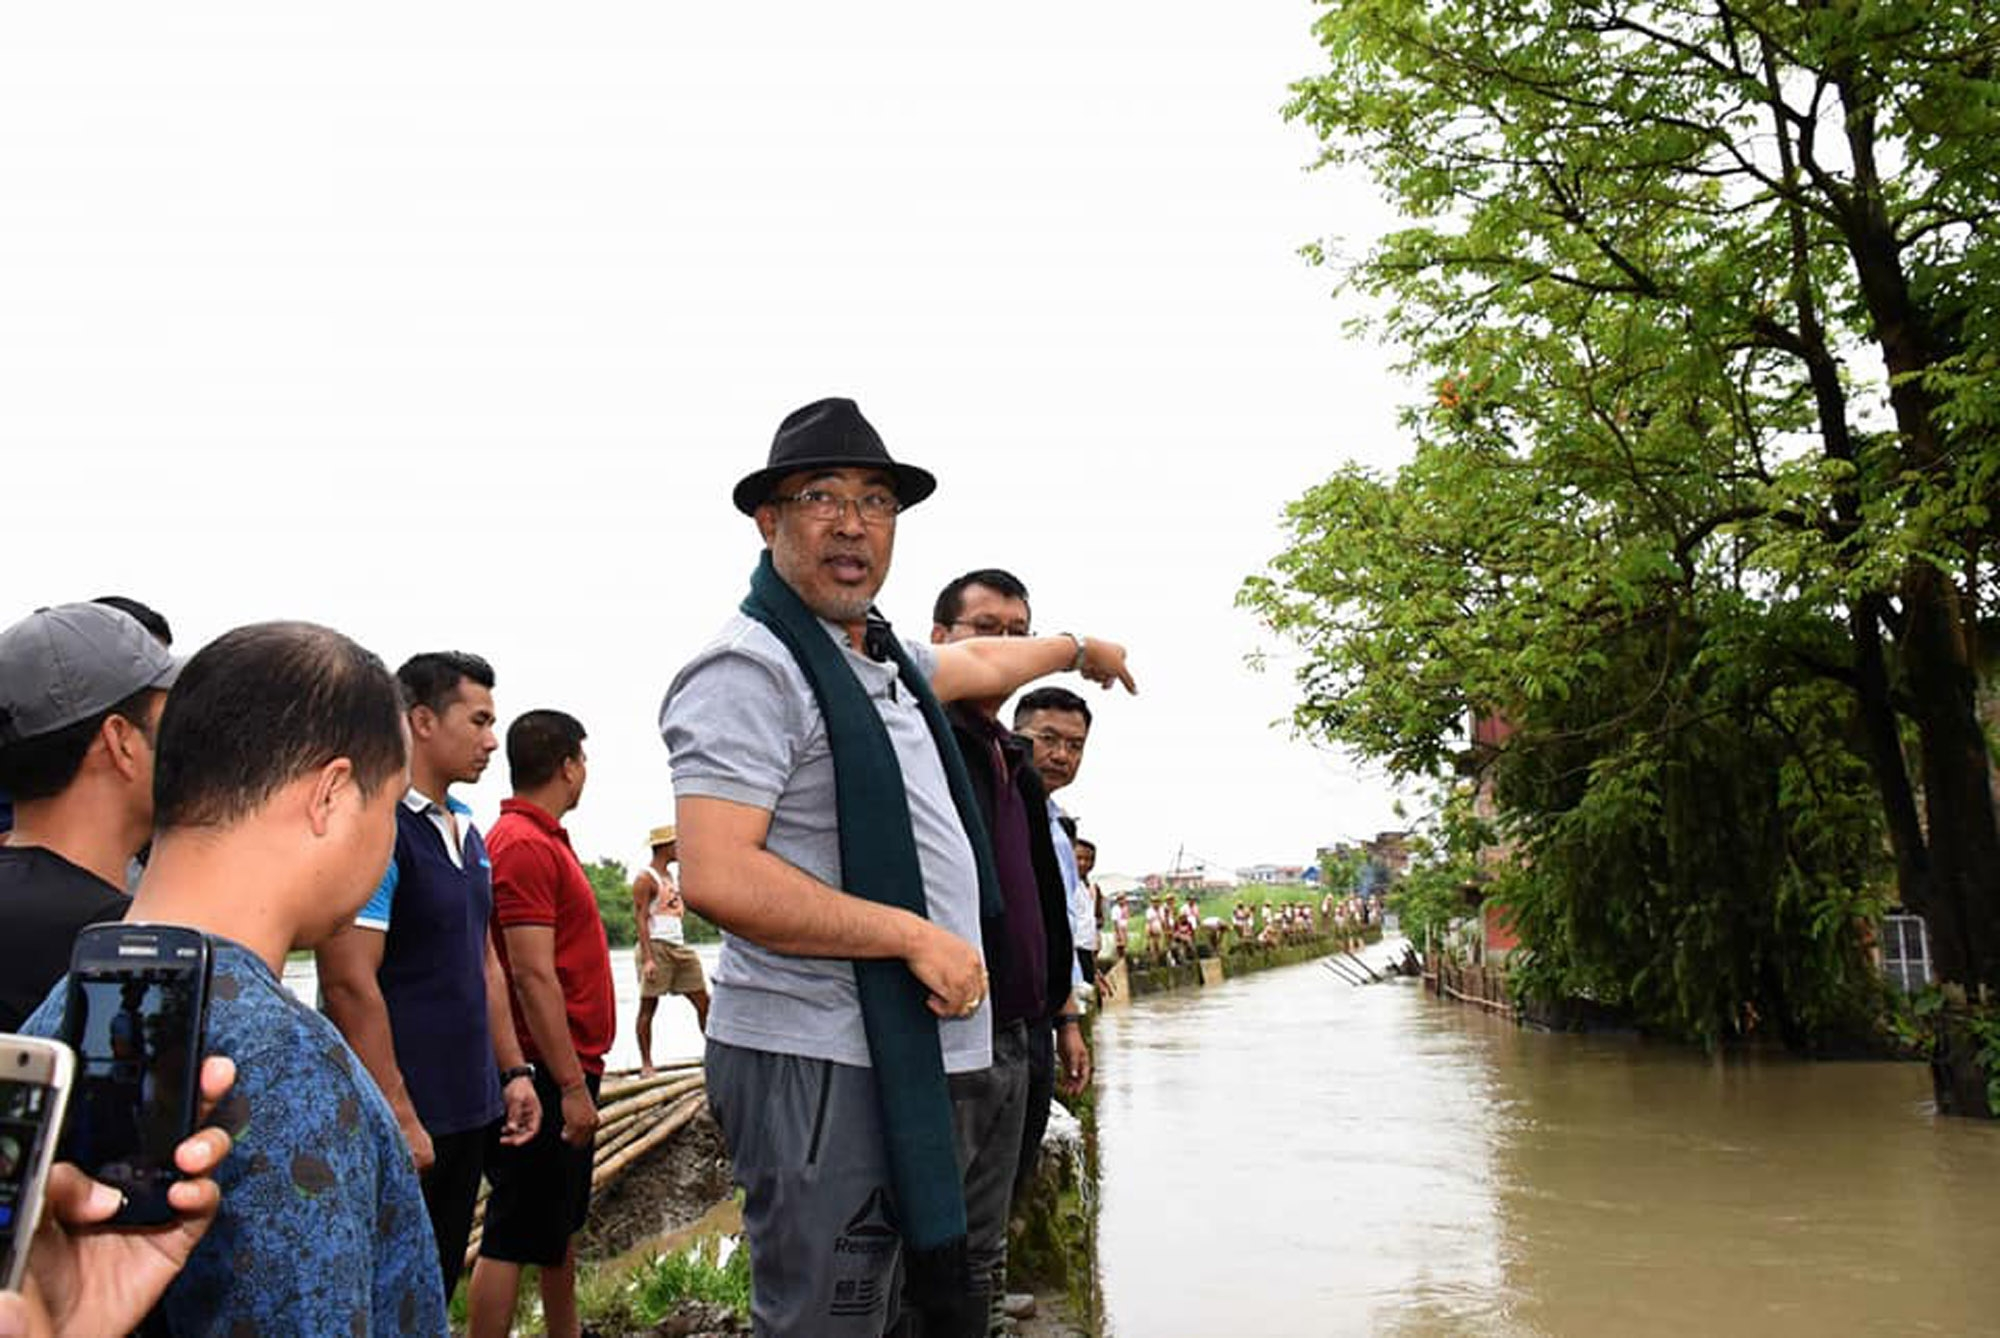 Manipur Chief Minister N Biren Singh during a visit to flood-affected areas in Imphal on Thursday. Photo credit: IANS